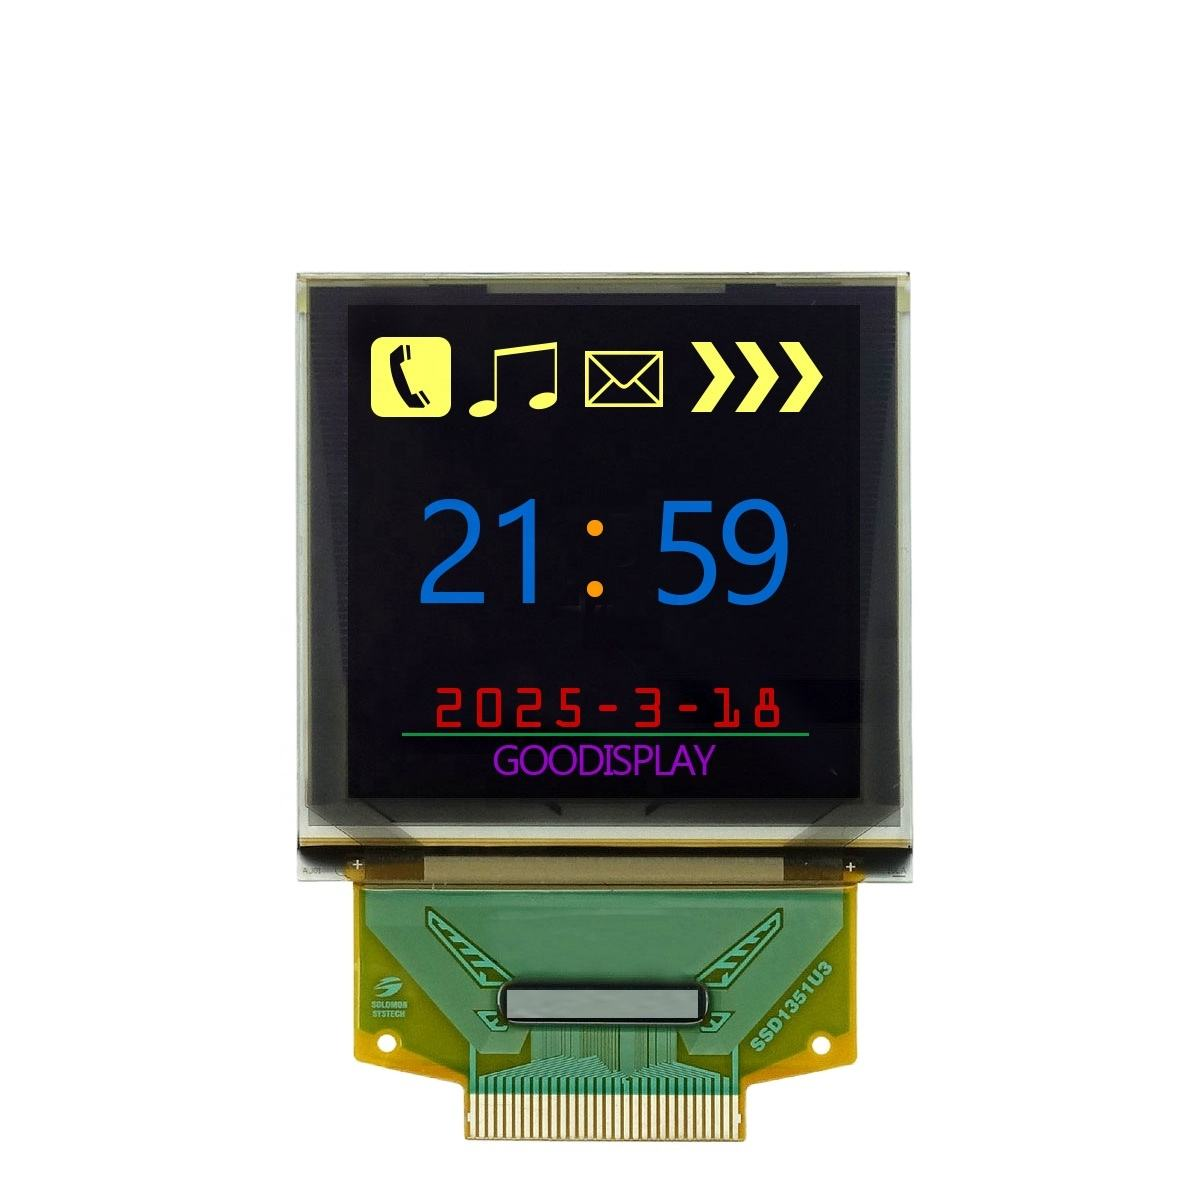 Full Color OELD GooDisplay SPI interface de display <span class=keywords><strong>oled</strong></span> de 1.5 polegadas